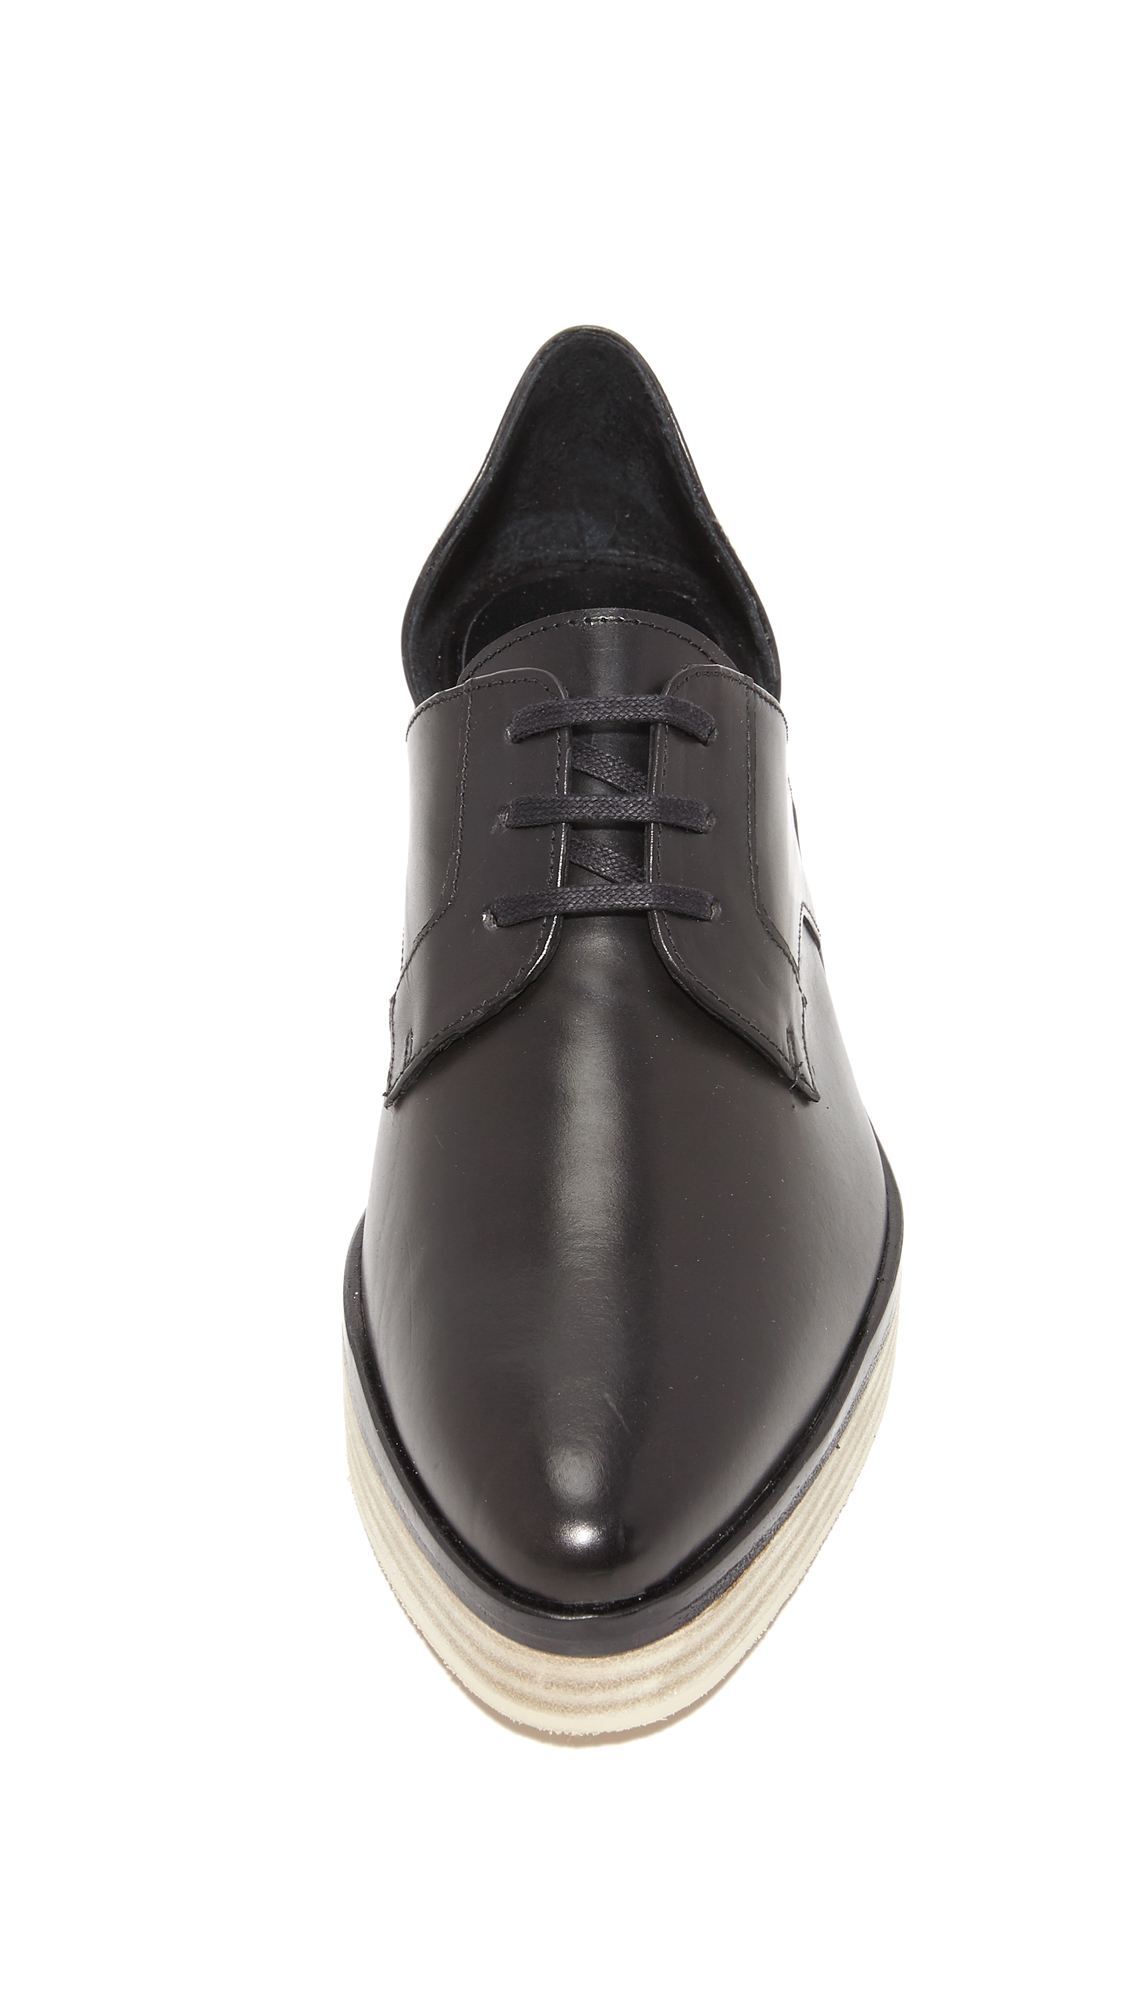 Freda Salvador Will Dorsay Platform Oxfords Shopbop D Island Shoes Casual Oxford Loafers Genuine Leather Brown